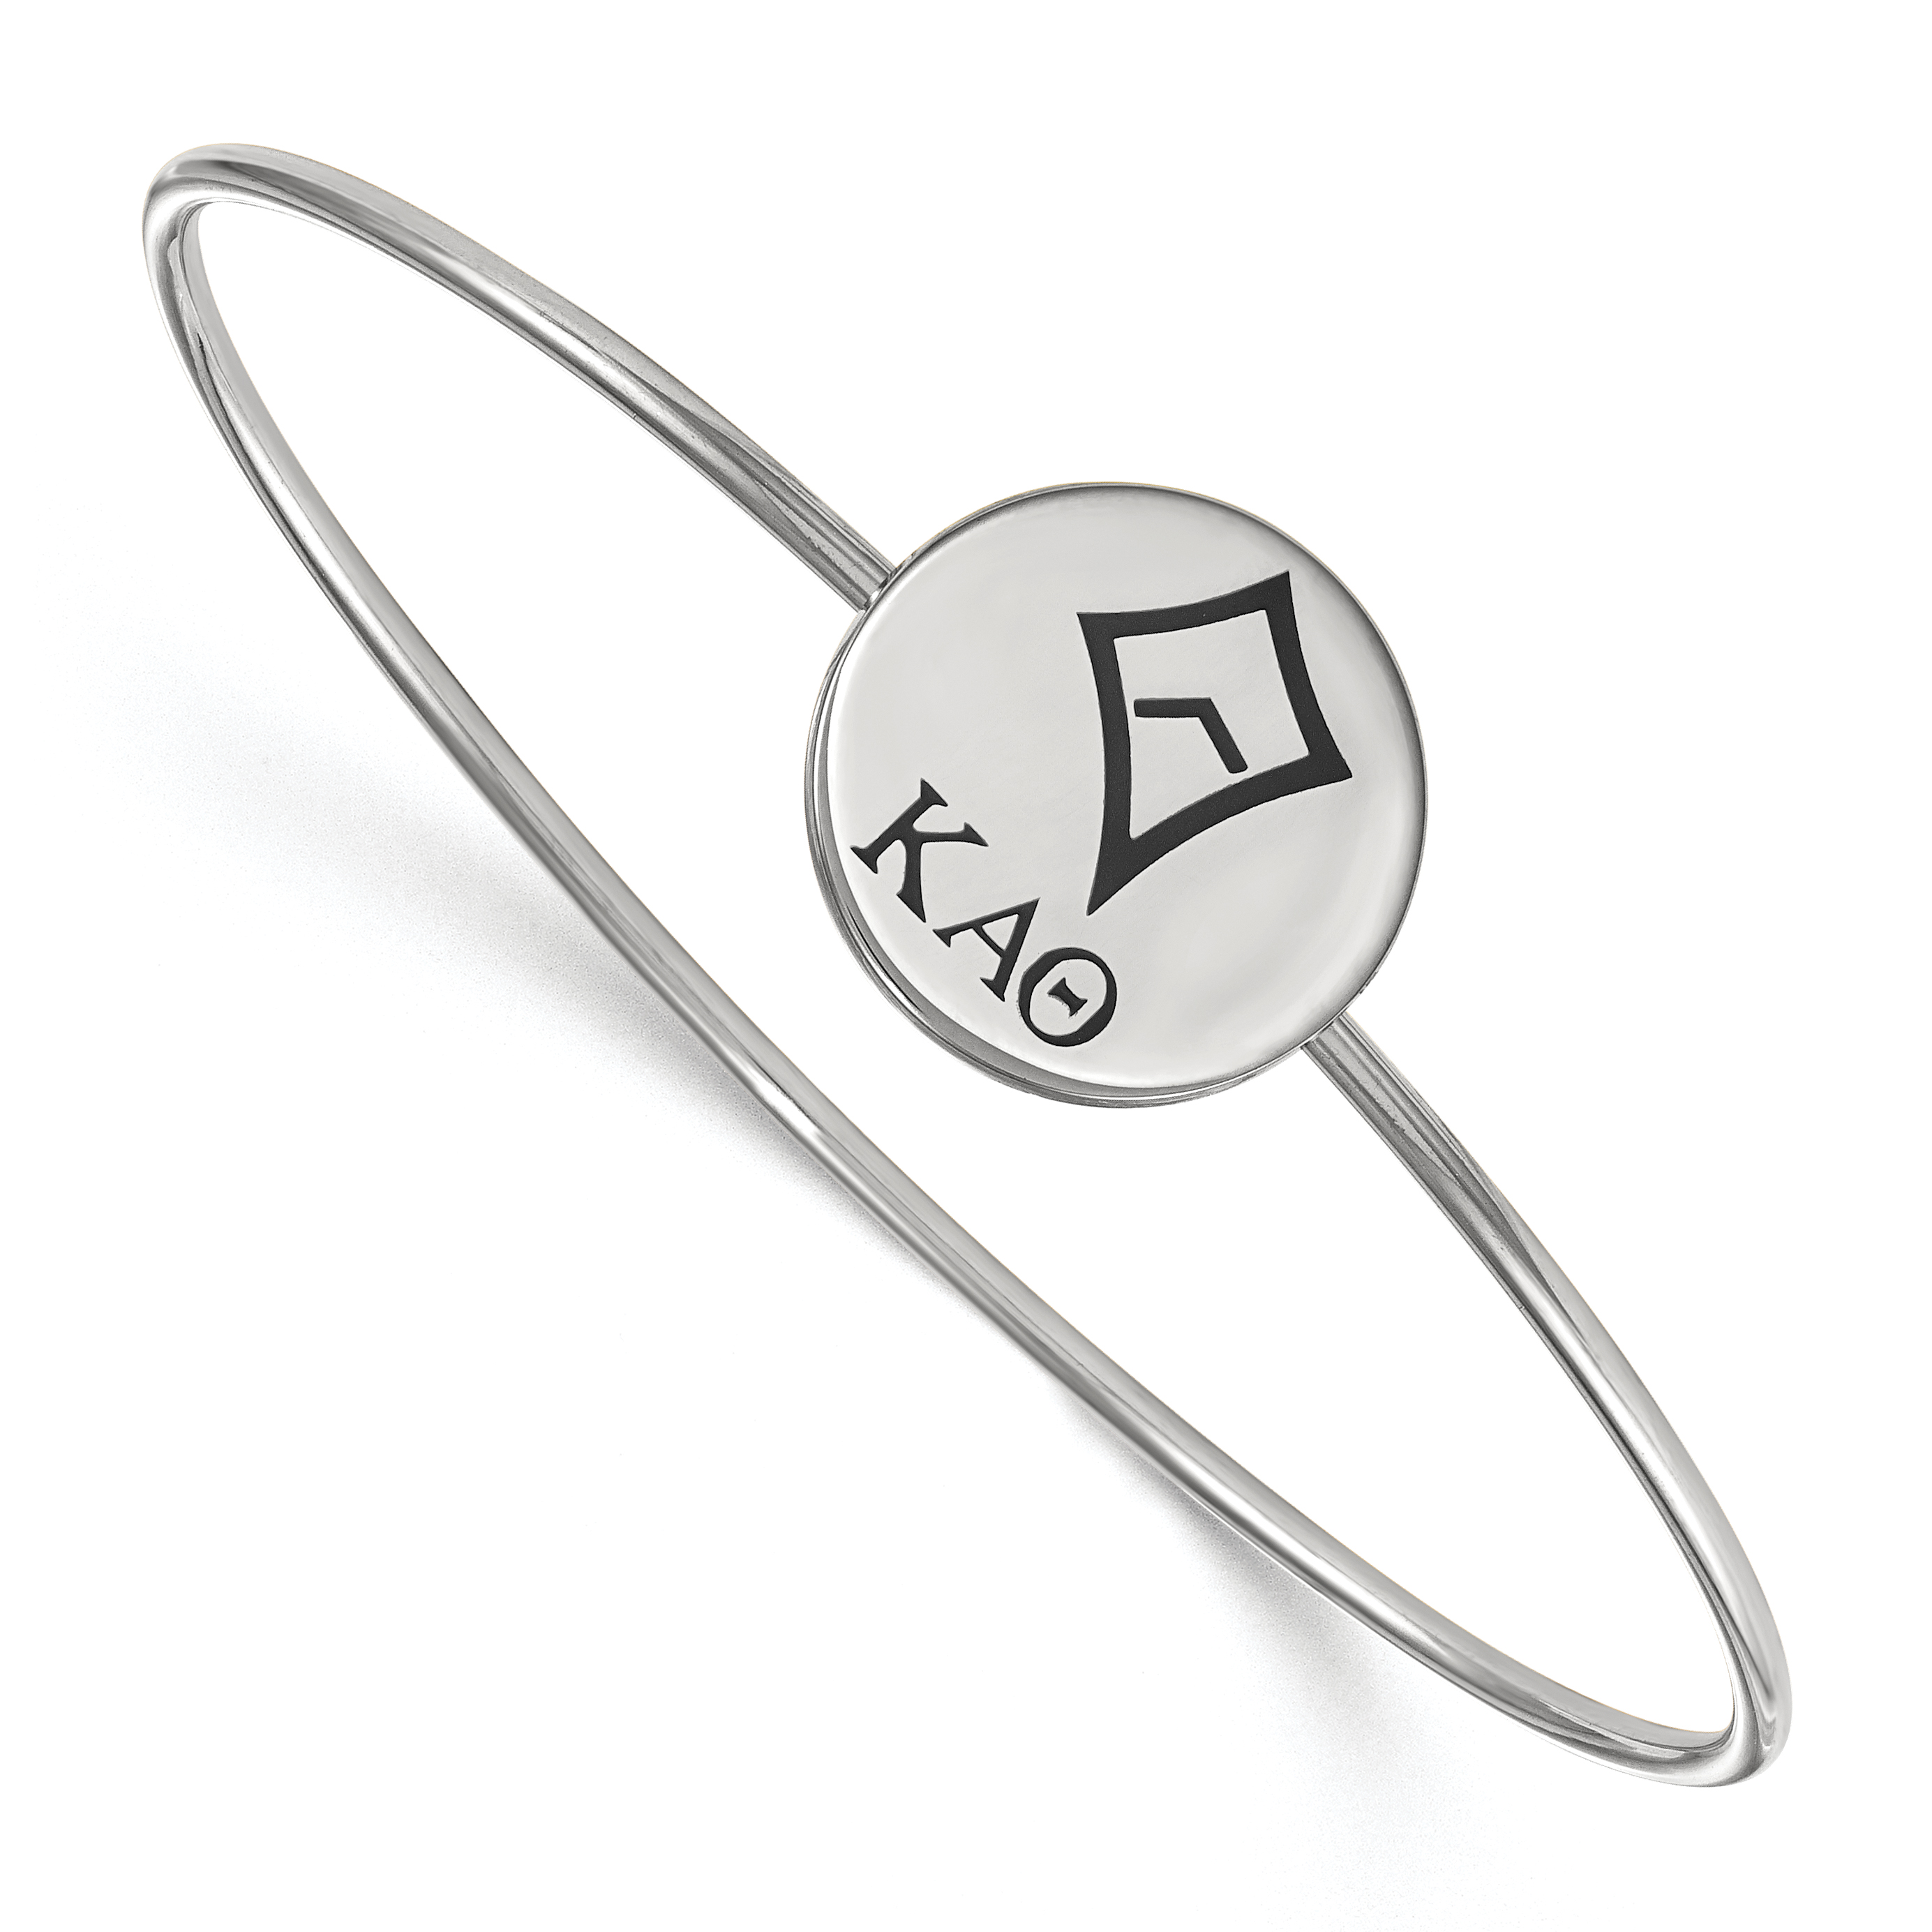 Fine Bracelets 925 Silver Sororities 6in Kappa Kappa Gamma Enameled Slip-on Bangle